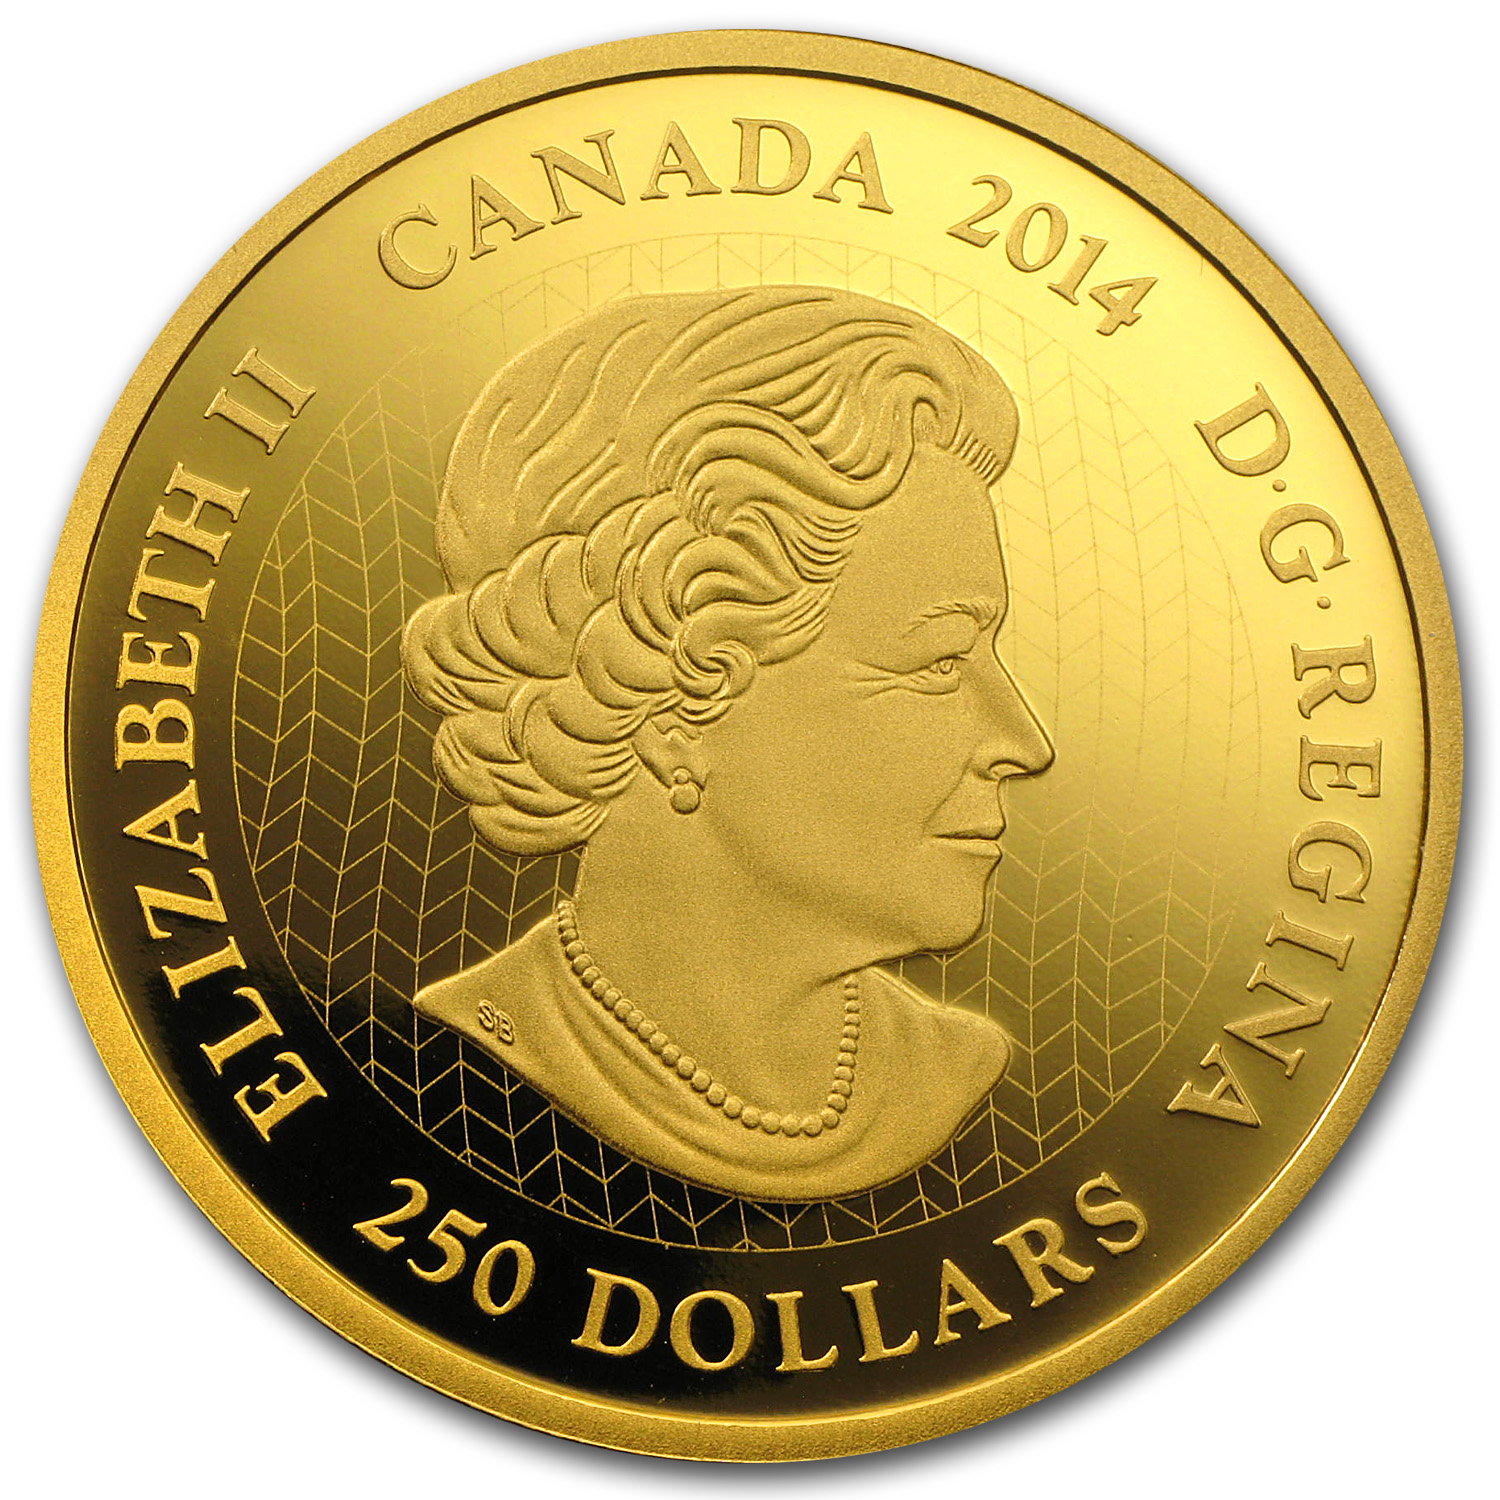 2014 2 oz Gold Canadian $250 Coin - Canadian Contemporary Art